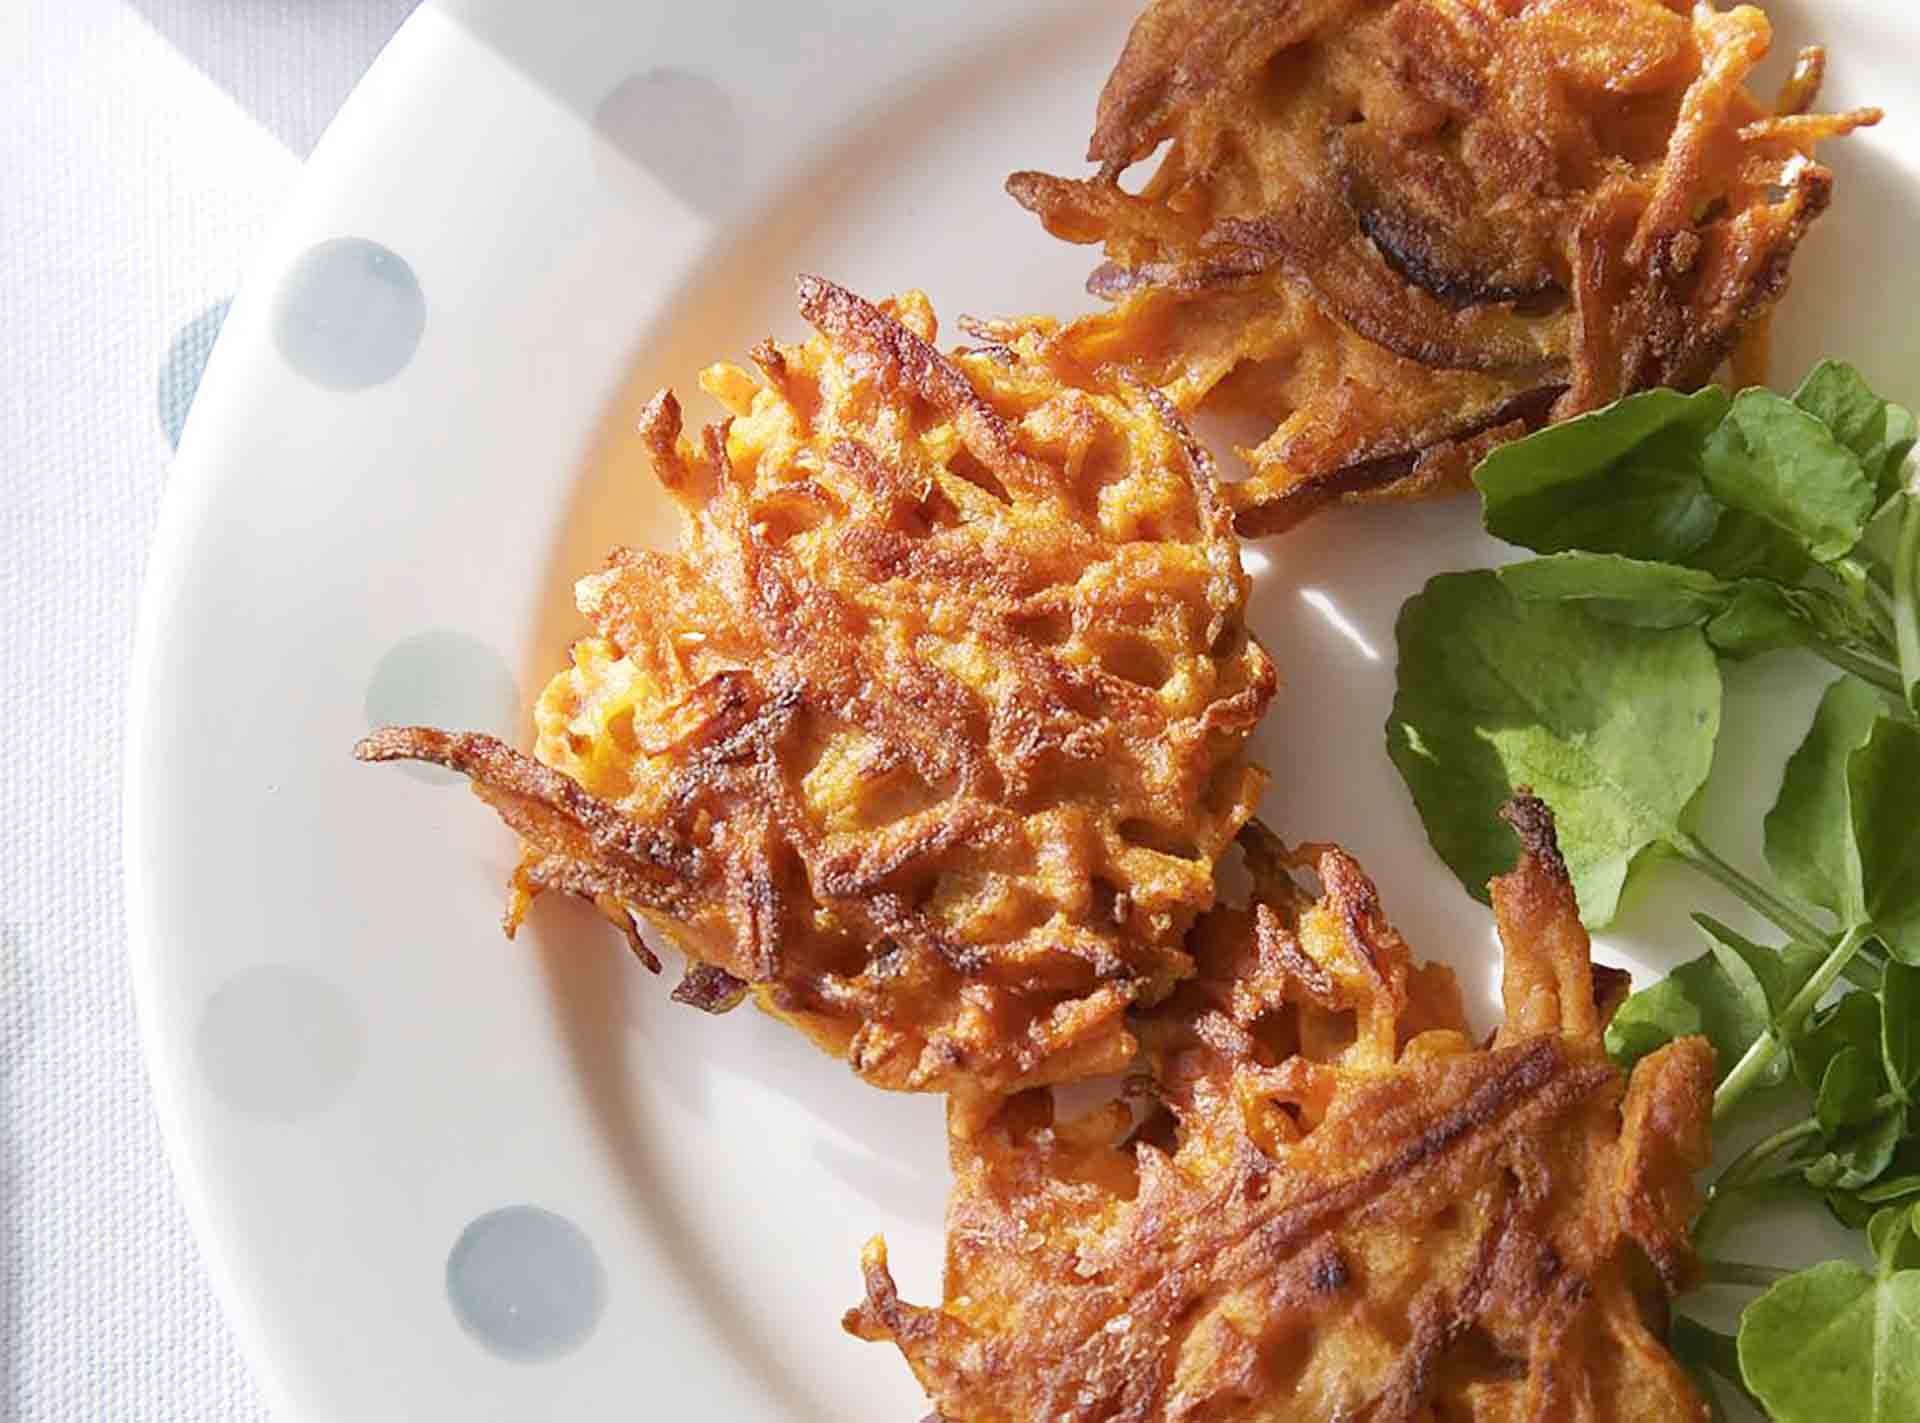 Three carrot fritters sitting on a white plate with a few decorative greens.